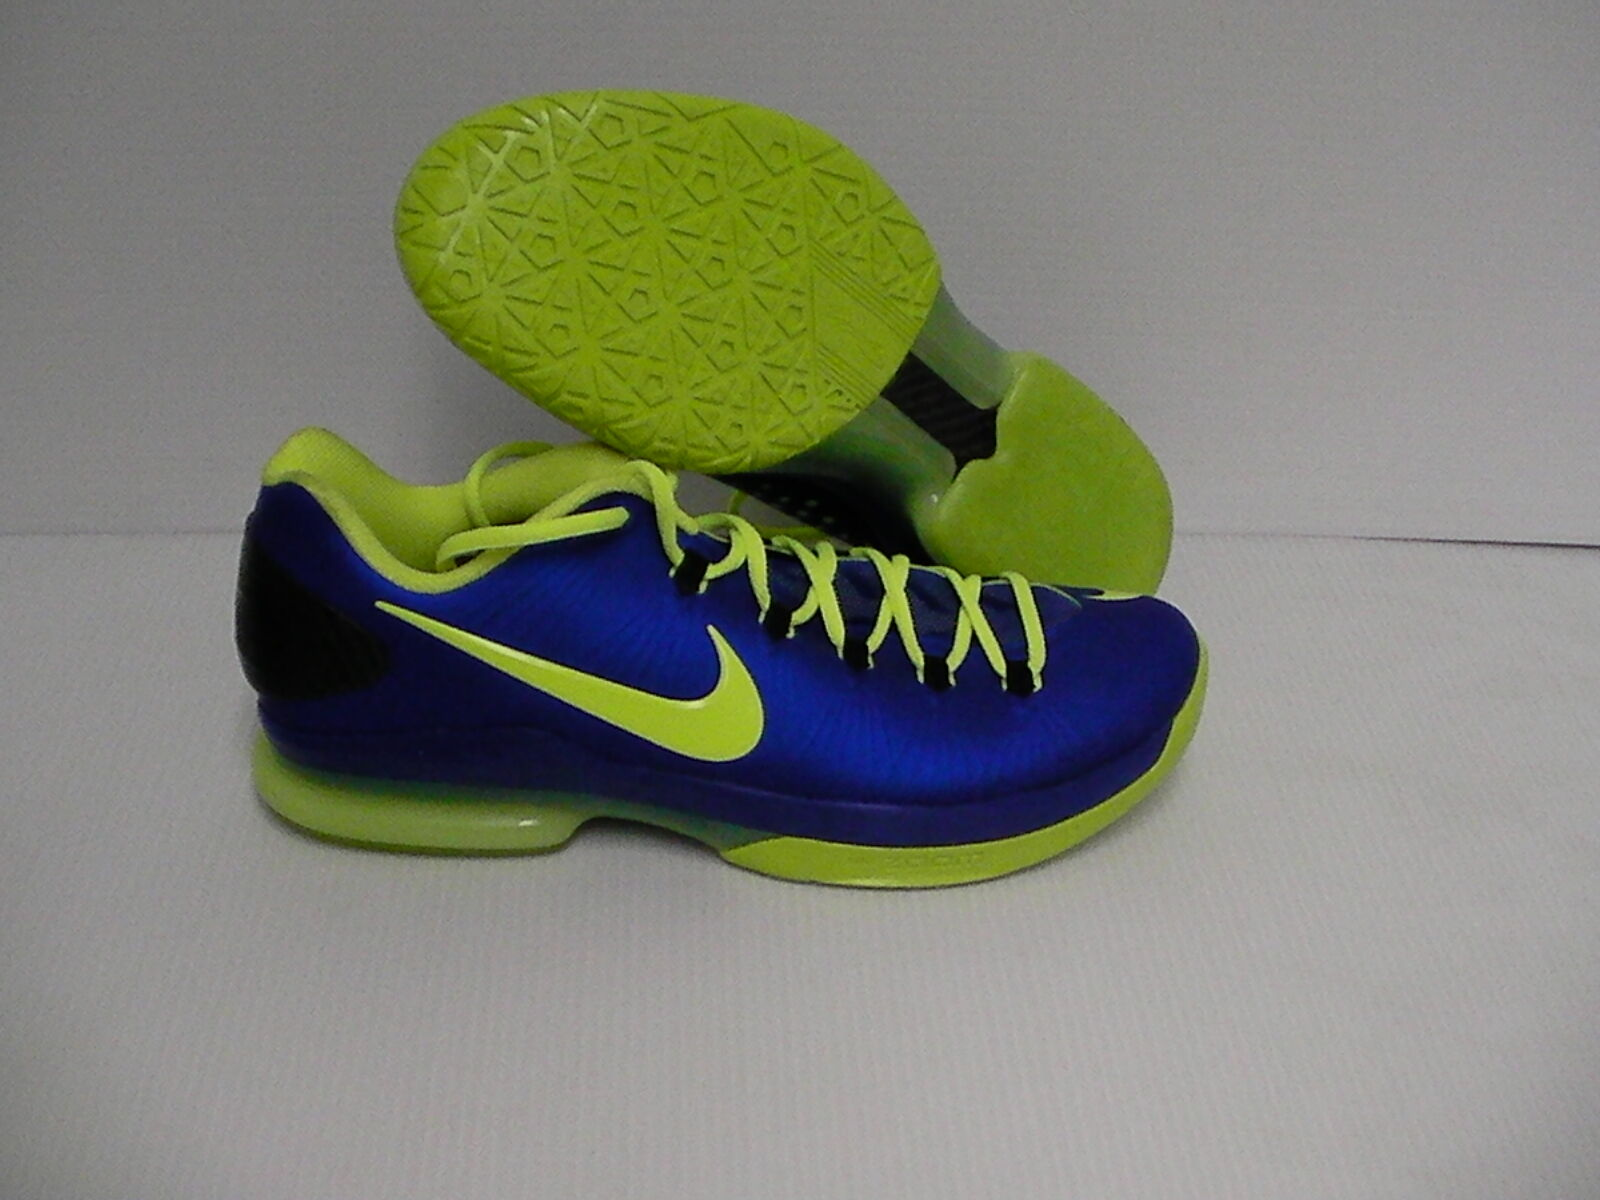 Nike zoom elite series basketball us shoes low size 11.5 us basketball new 2f9992